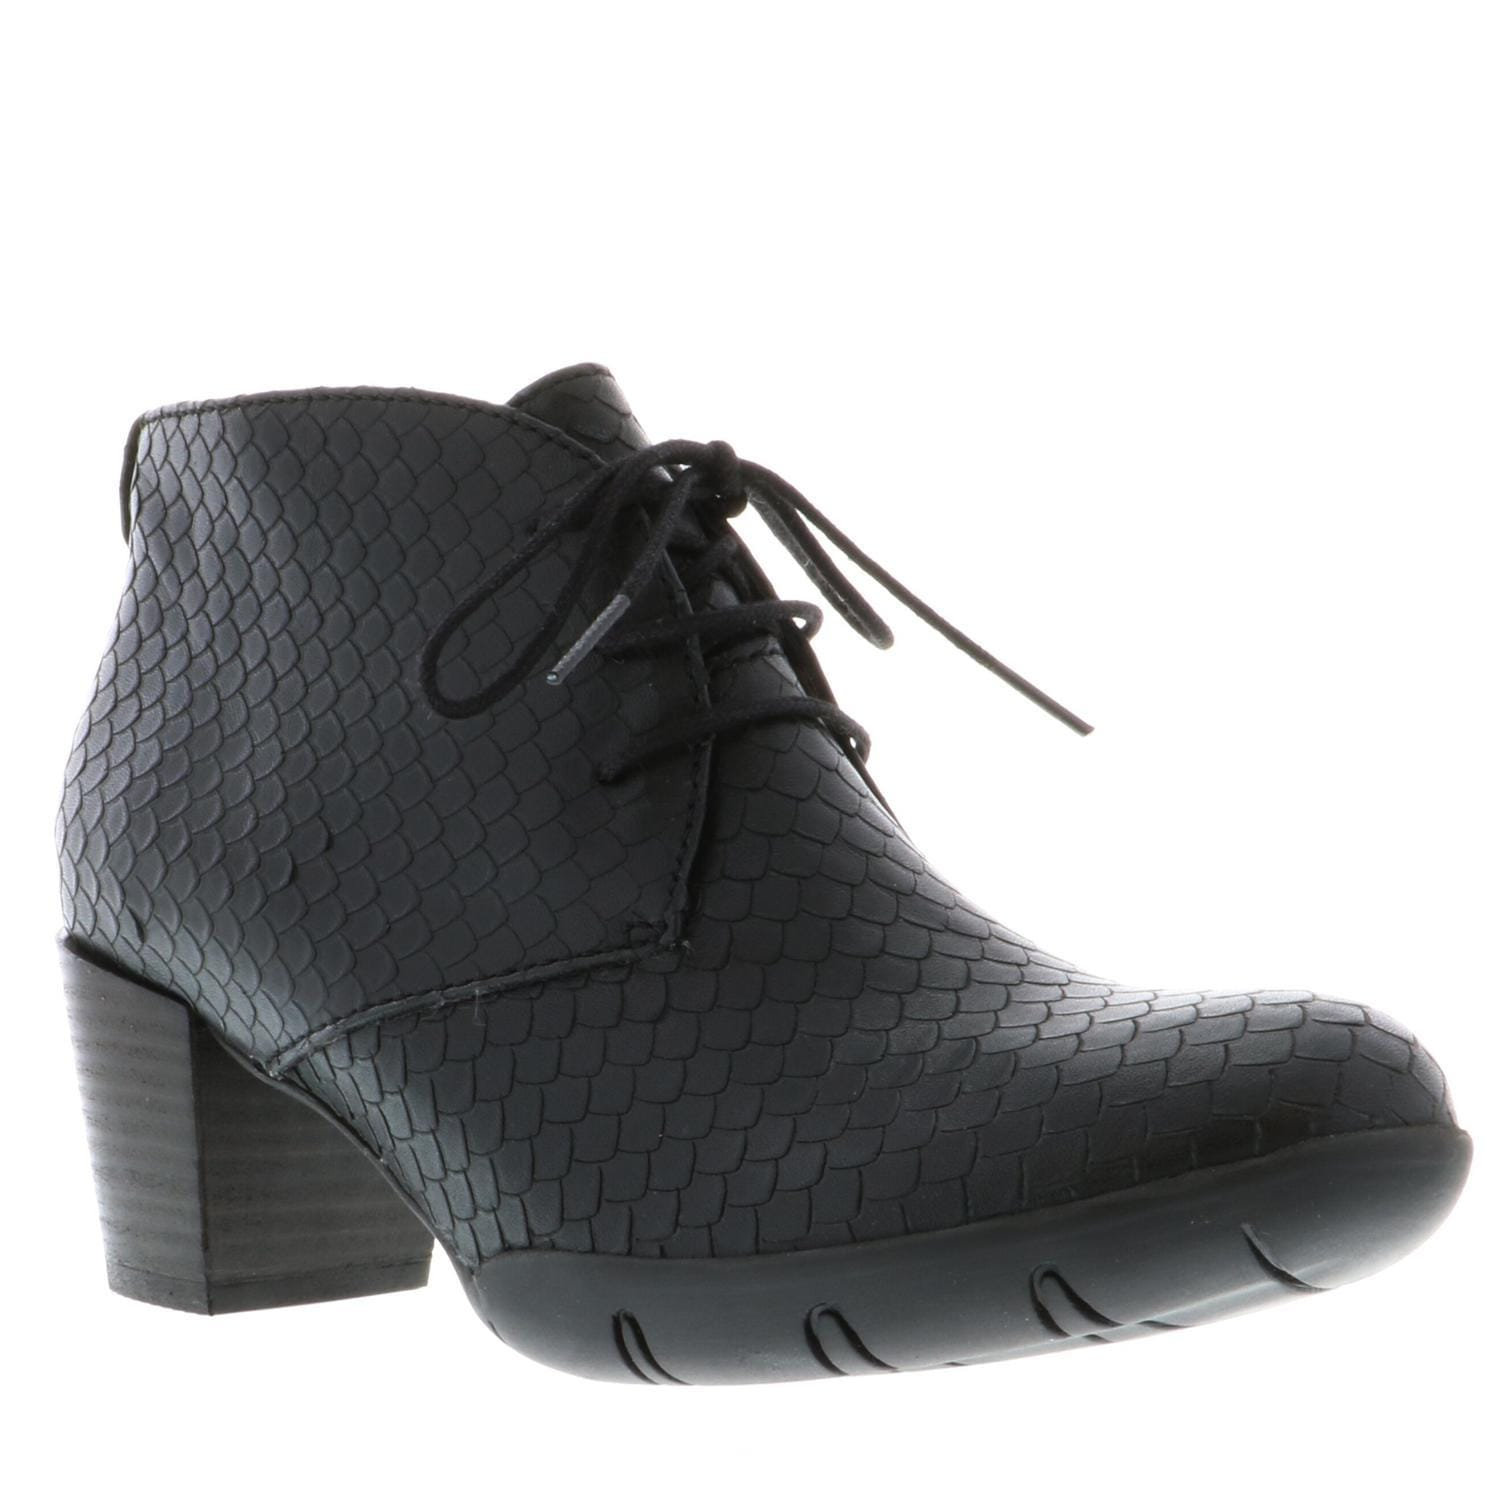 Wolky Bighorn 3610 | Women's Leather Lace Up Heeled Bootie | Simons